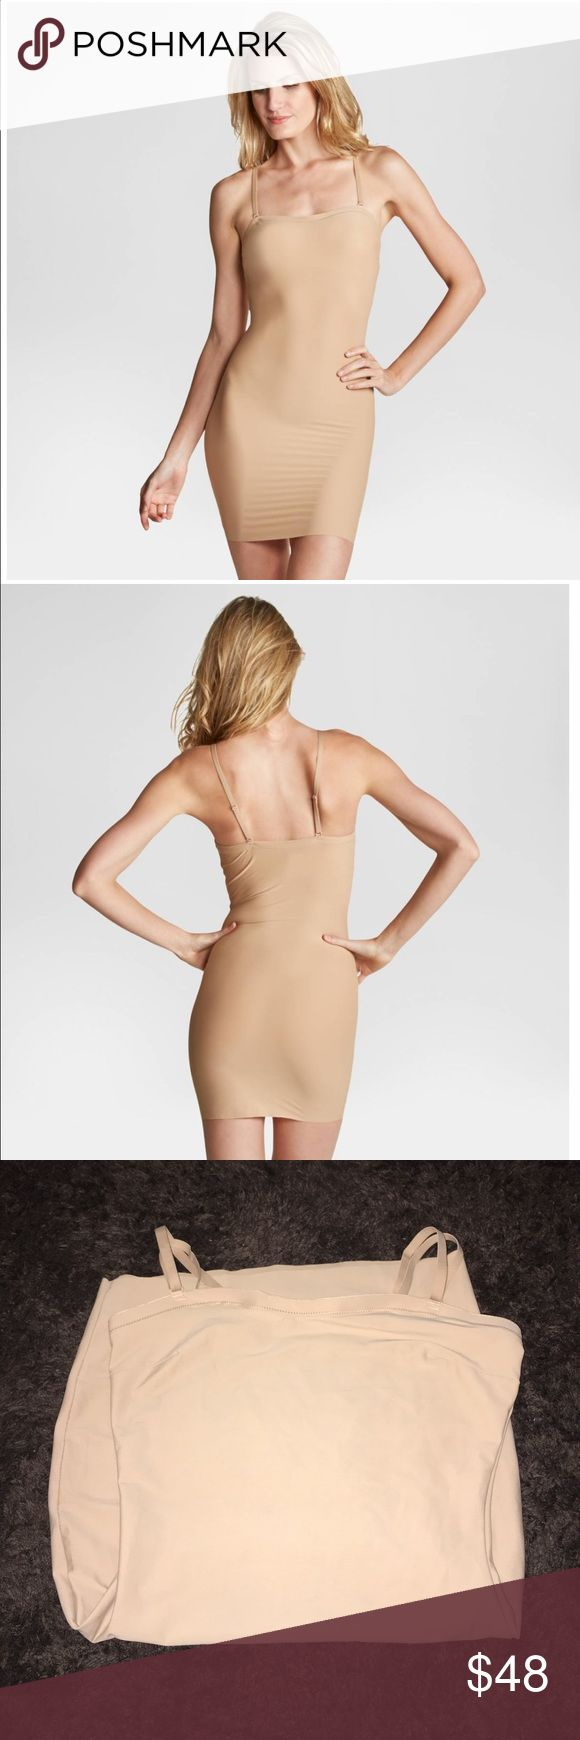 New beige Spanx body slip in Medium New without tags beige in Medium Assets by Spanx Micro Shaping Convertible Slip. This slip does it all! Lightweight, single-layer offers comfortable shaping all over! What's more? With removable, convertible straps, you can wear this slip 5 ways! • Lightweight, single-layer shaping -- all- over control • Removable, convertible straps – wear 5 ways! • Imported • 80% Nylon, 20% Spandex/Elastane Material: 80% Nylon, 20% Spandex, Closure Style: Pull on SPANX…